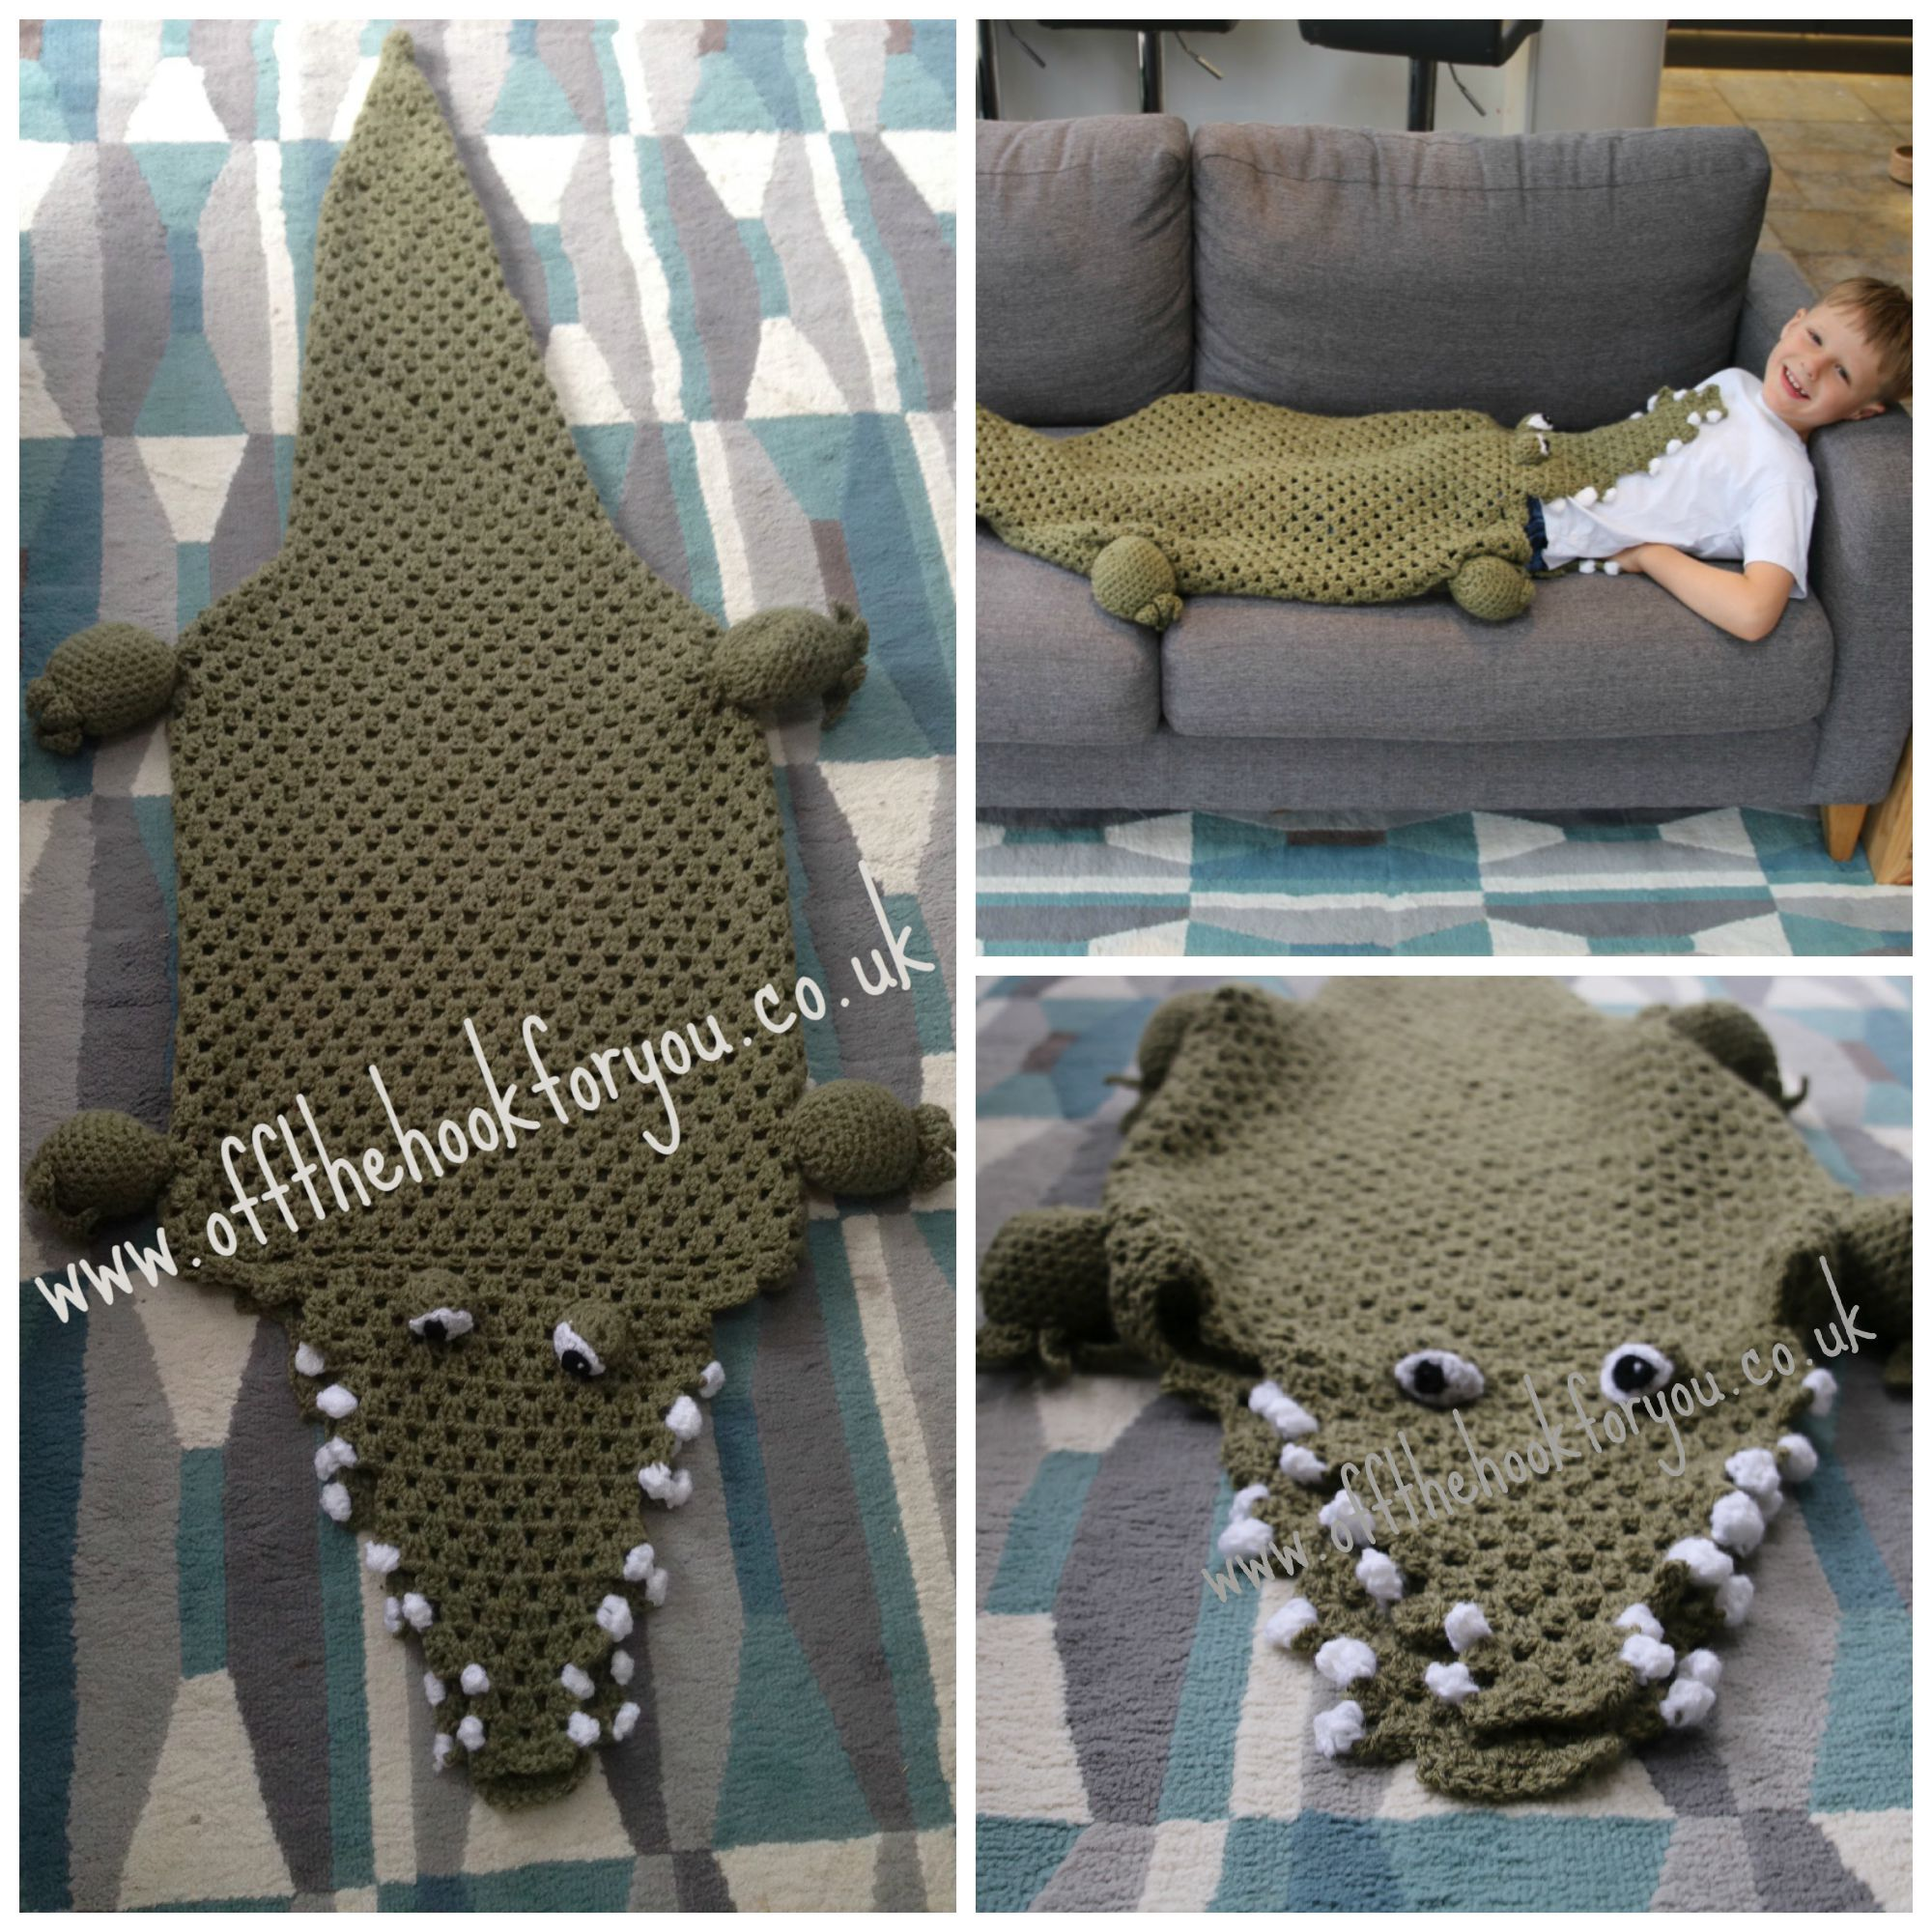 Eaten by a shark the pattern finally blanket crochet crocshark blankets crochet pattern bankloansurffo Choice Image